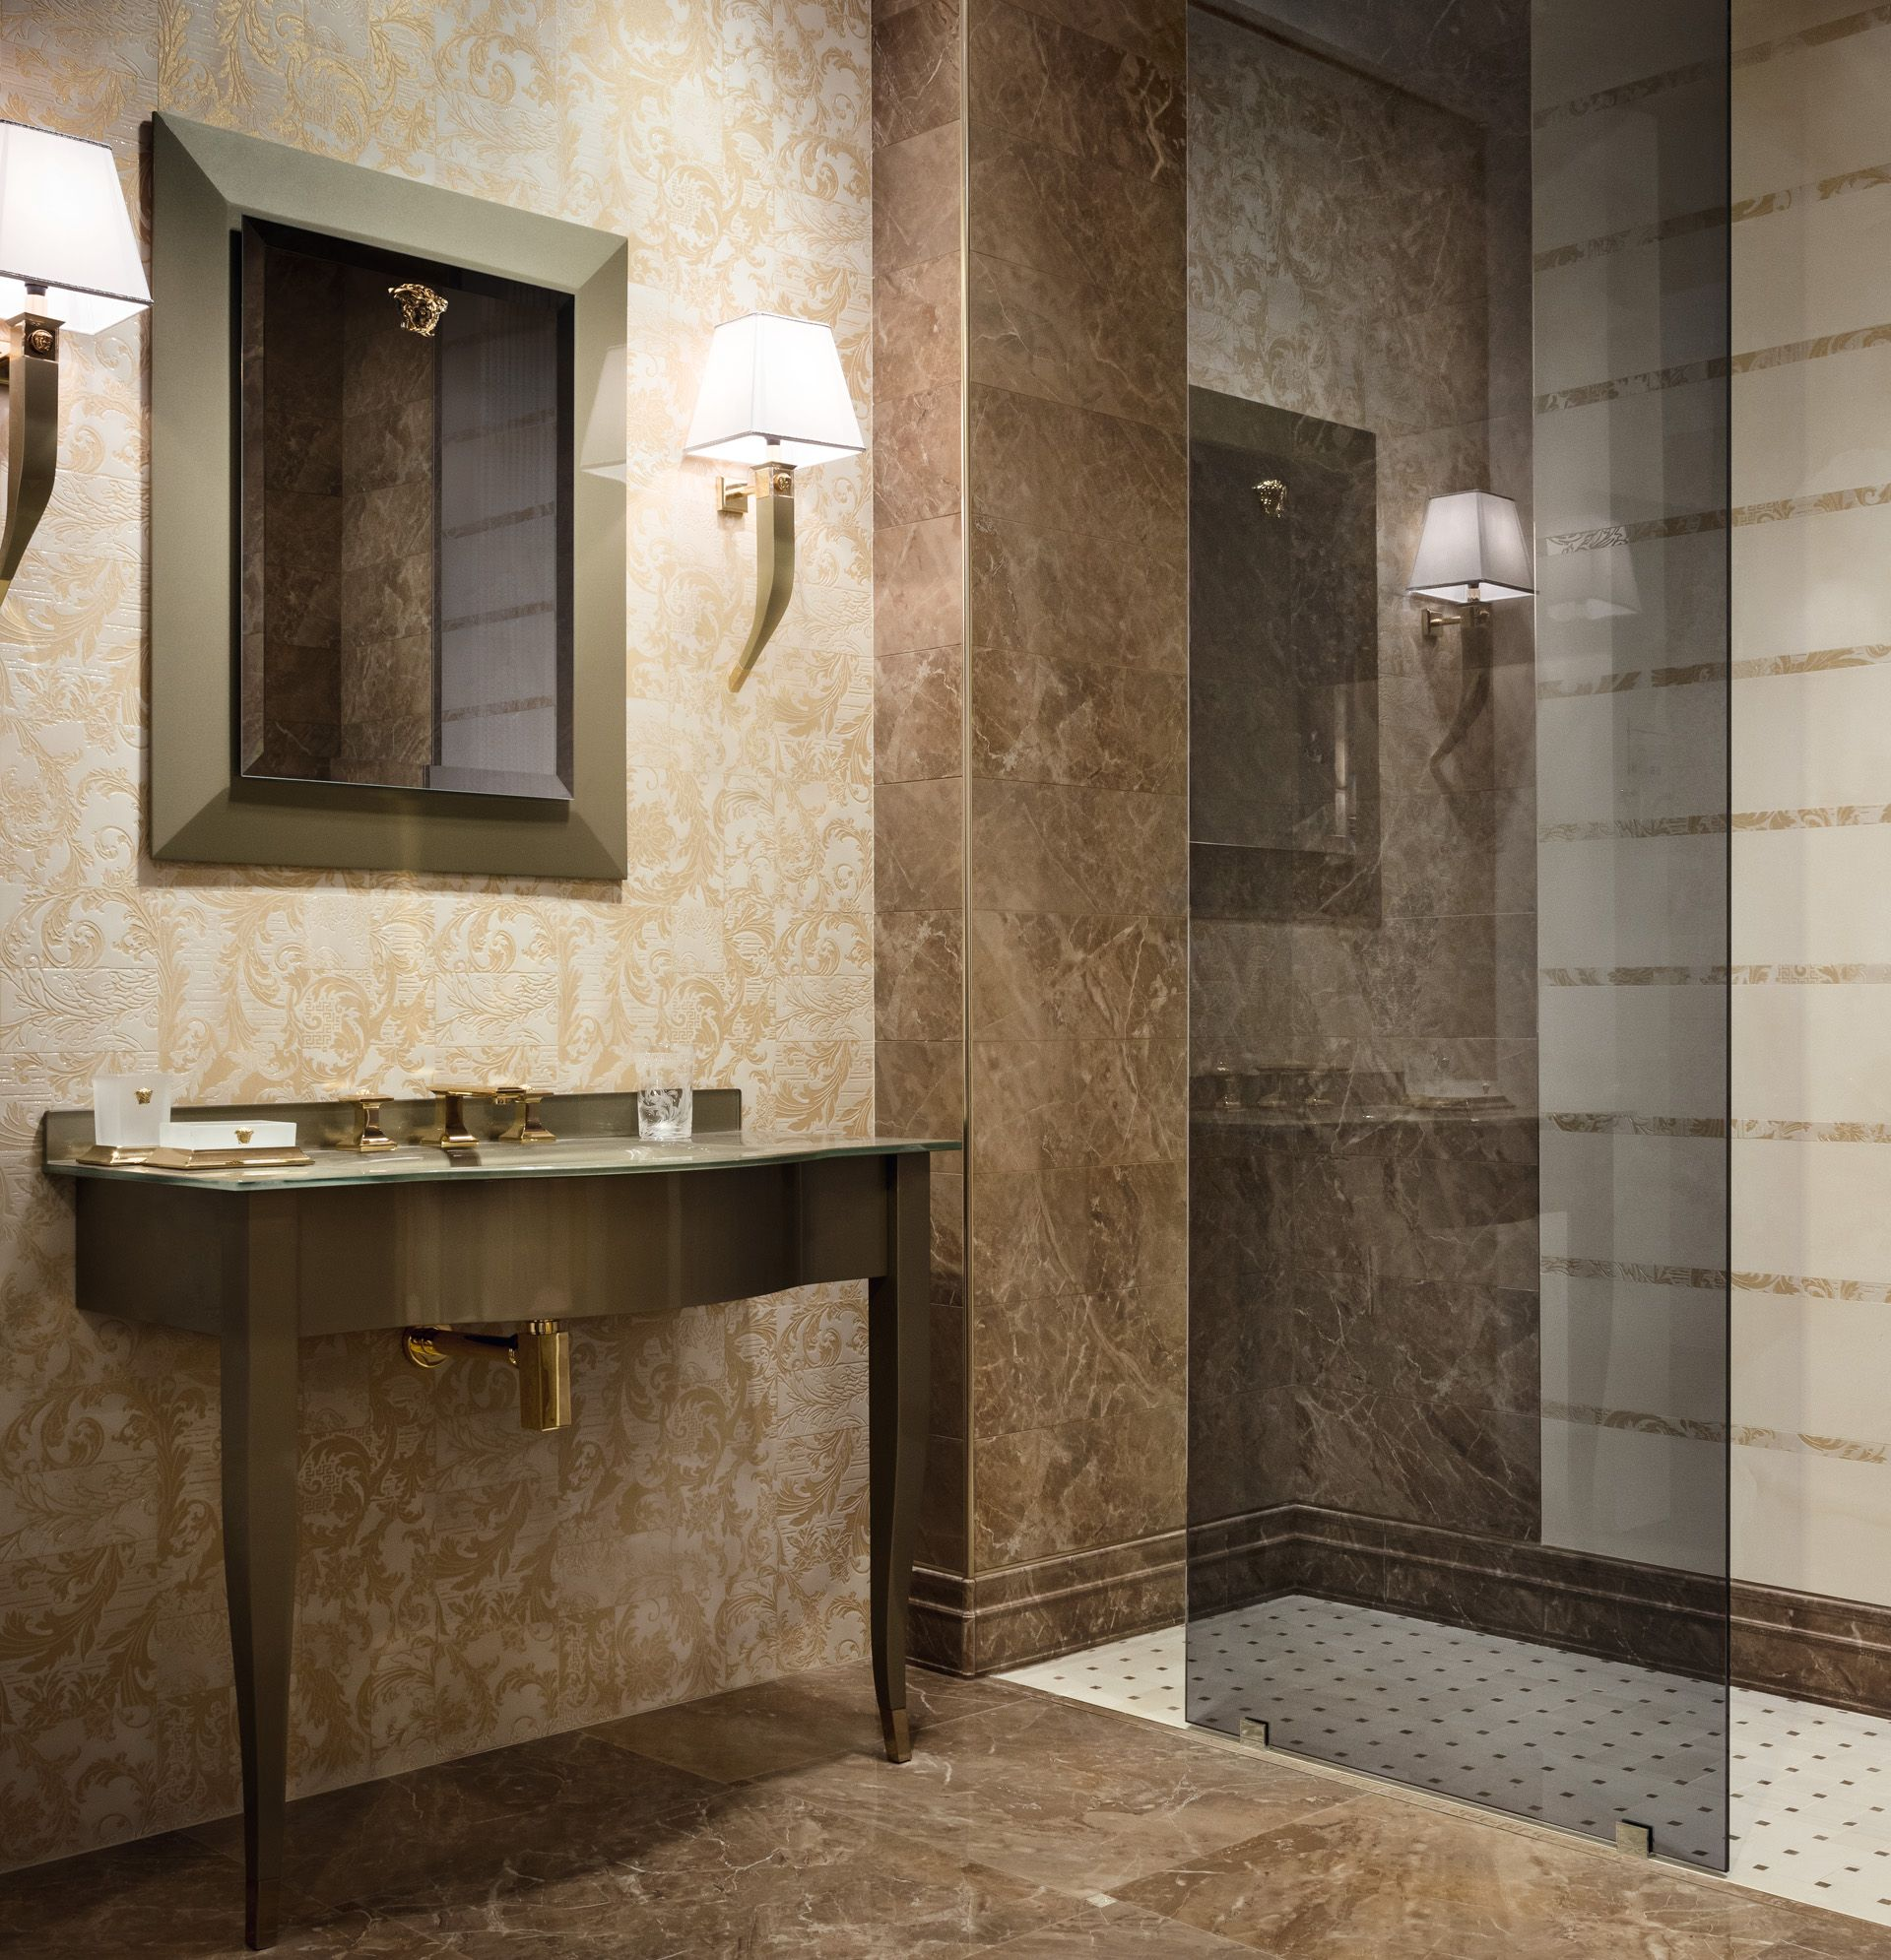 Interiors Versace Homehome Collectionsversace Tilesfashion Showroommarblesempireflowshowersbathroom